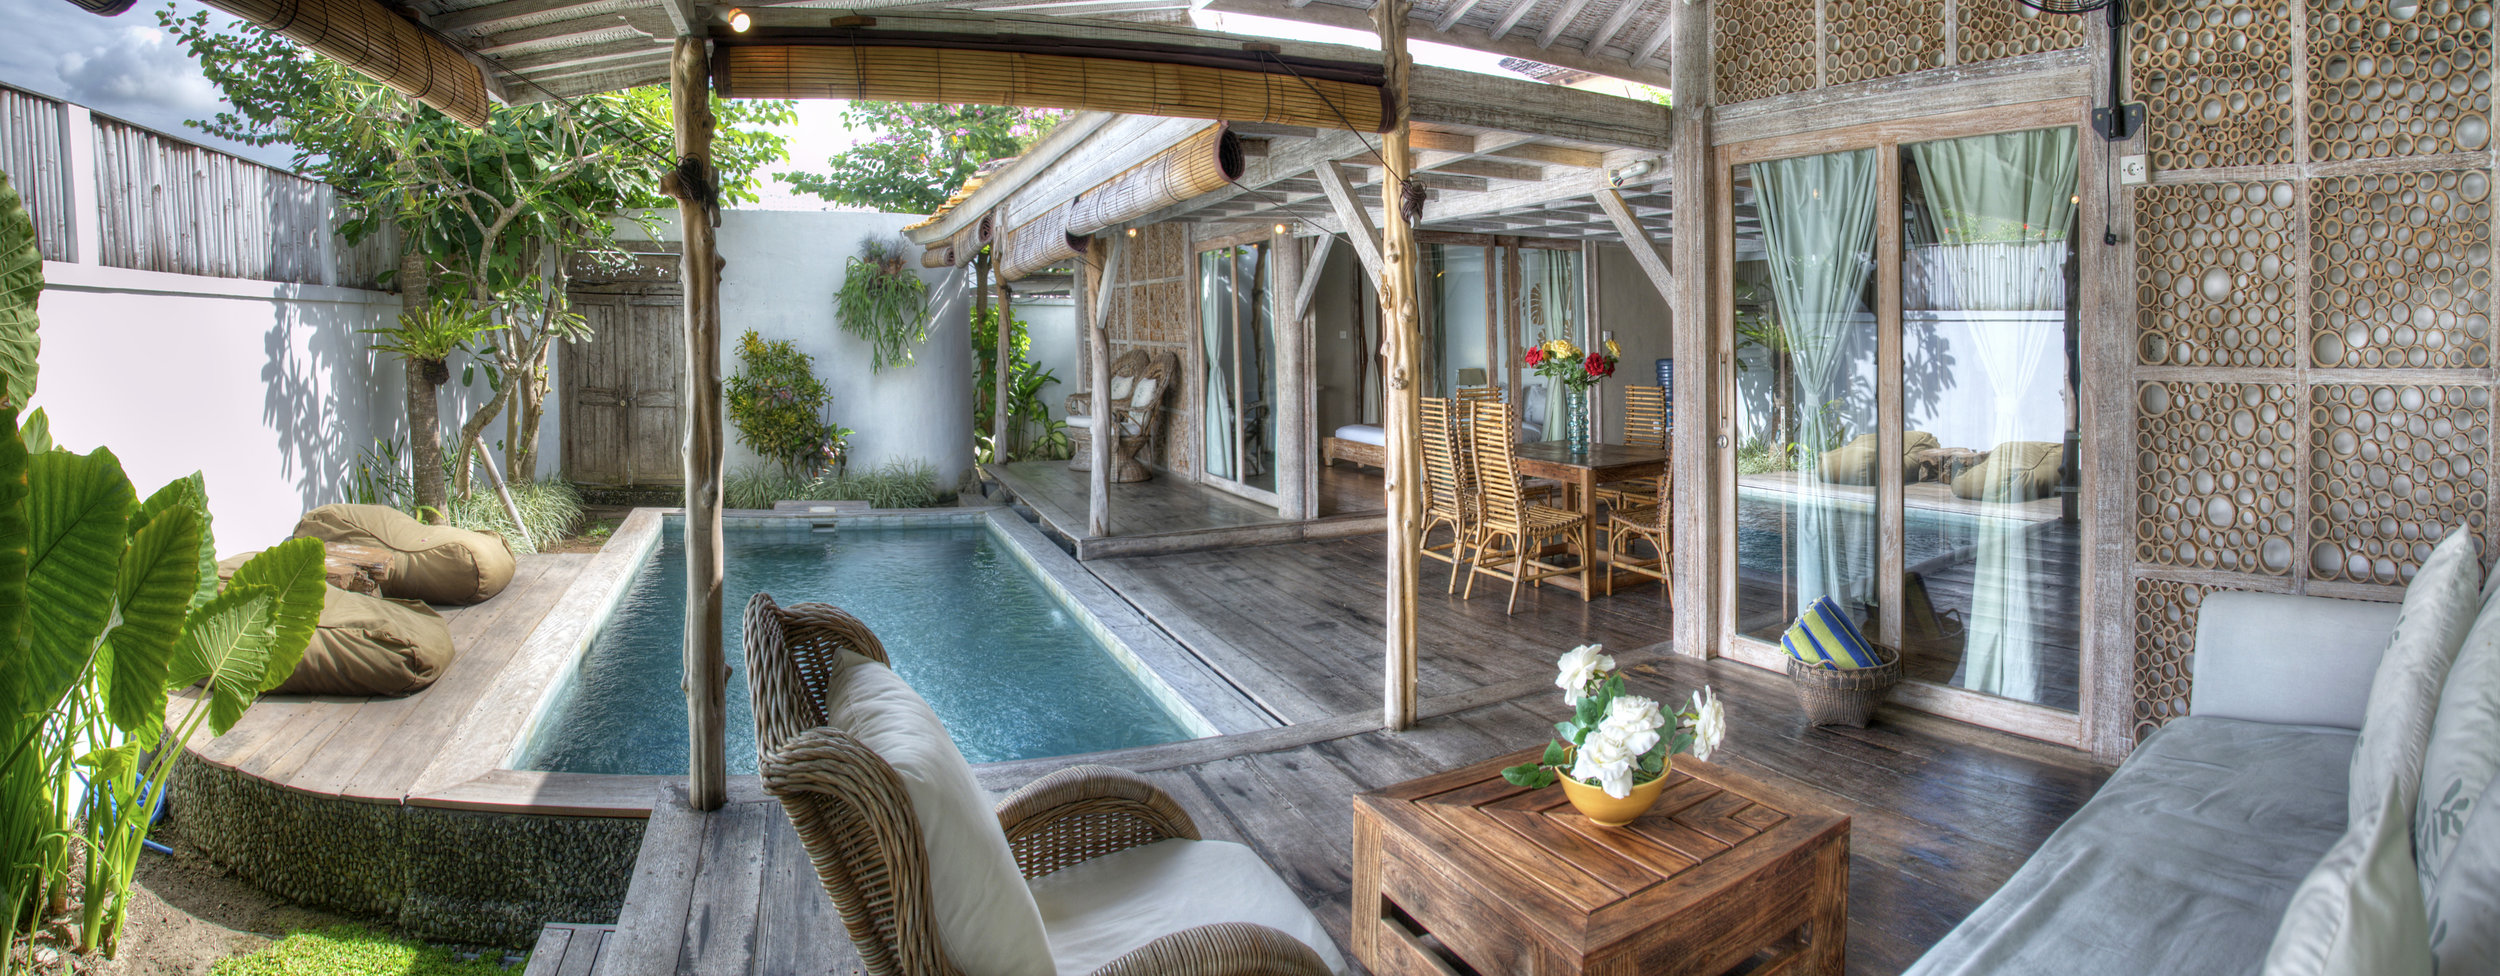 A combination of comfort and luxury in this beautiful 2-bedroom tropical villa !